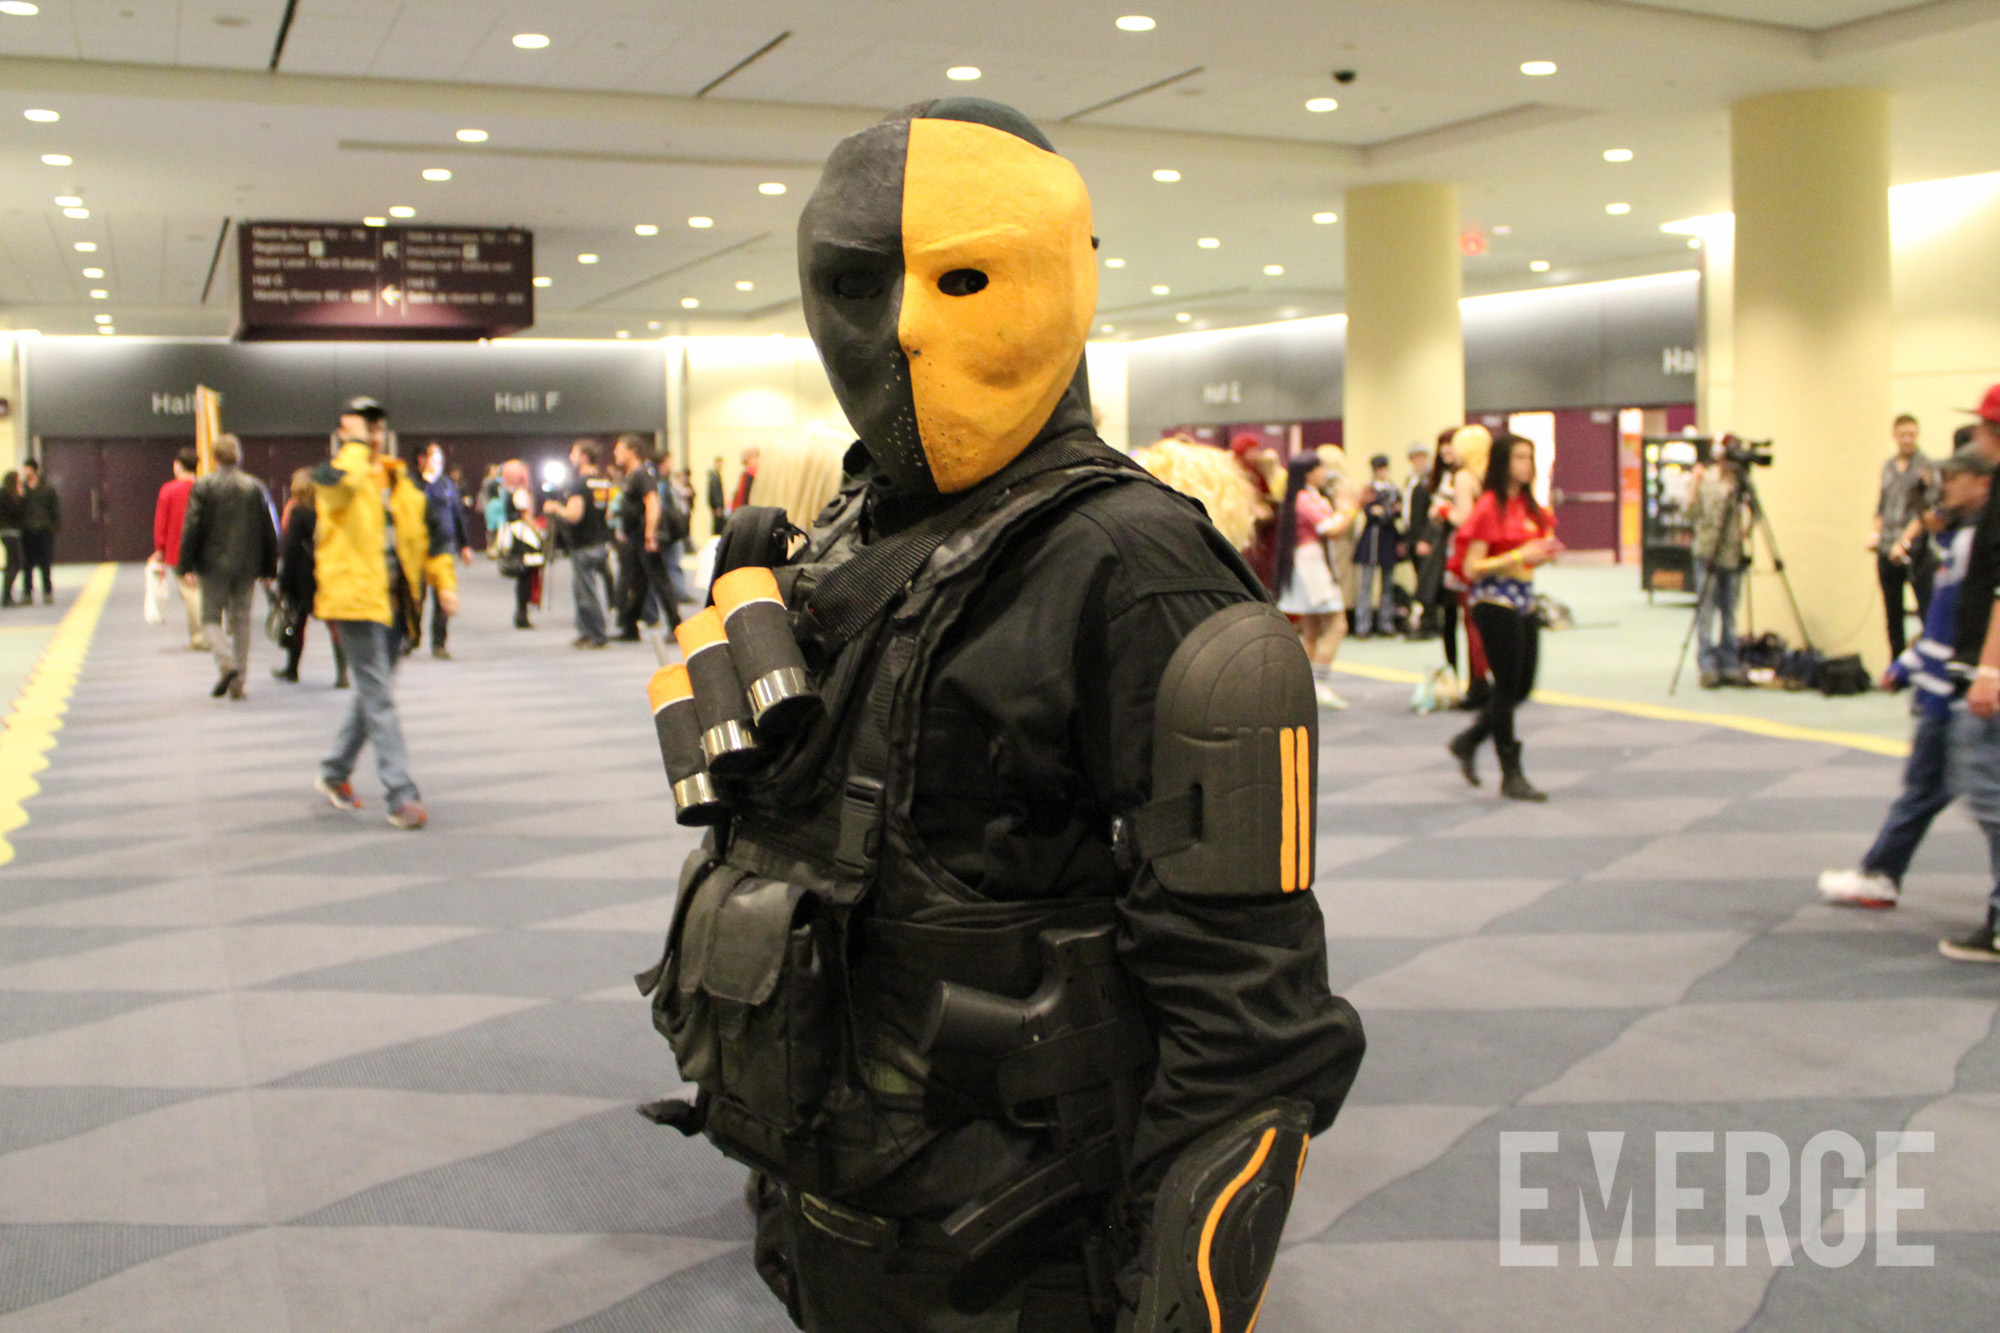 The legendary assassin Slade Wilson a.k.a. Death Stroke with his iconic yellow-and-black helmet. Just hope he does not show you his iconic sword